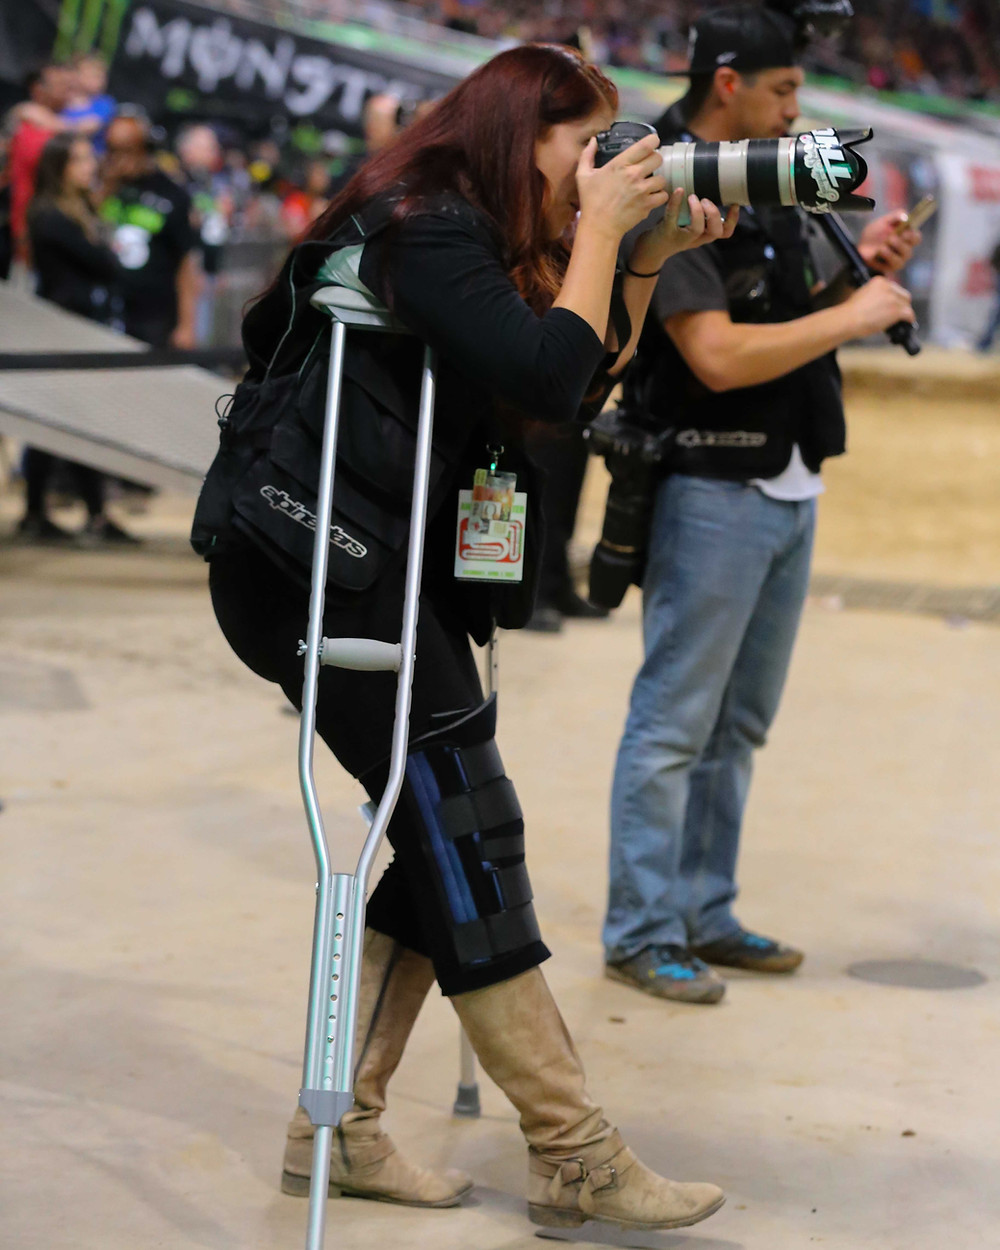 Just a Girl in a Motocross World: A conversation with professional sports photographer, Krystyn Slack